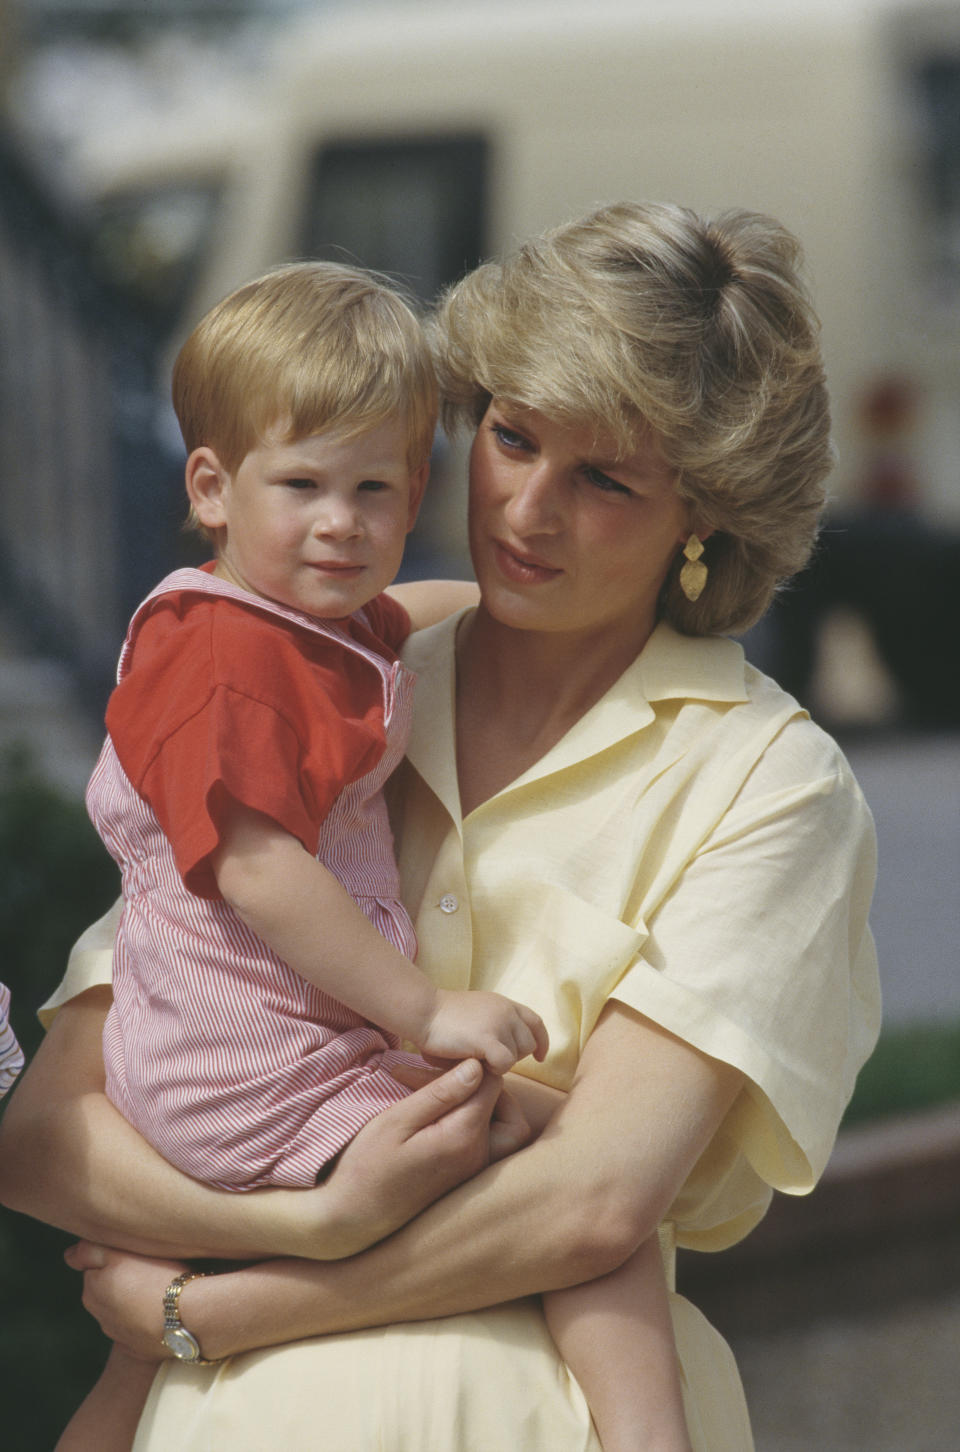 Diana, Princess of Wales (1961 - 1997) with her son Prince Harry during a holiday with the Spanish royal family at the Marivent Palace in Palma de Mallorca, Spain, August 1987. (Photo by Terry Fincher/Princess Diana Archive/Getty Images)